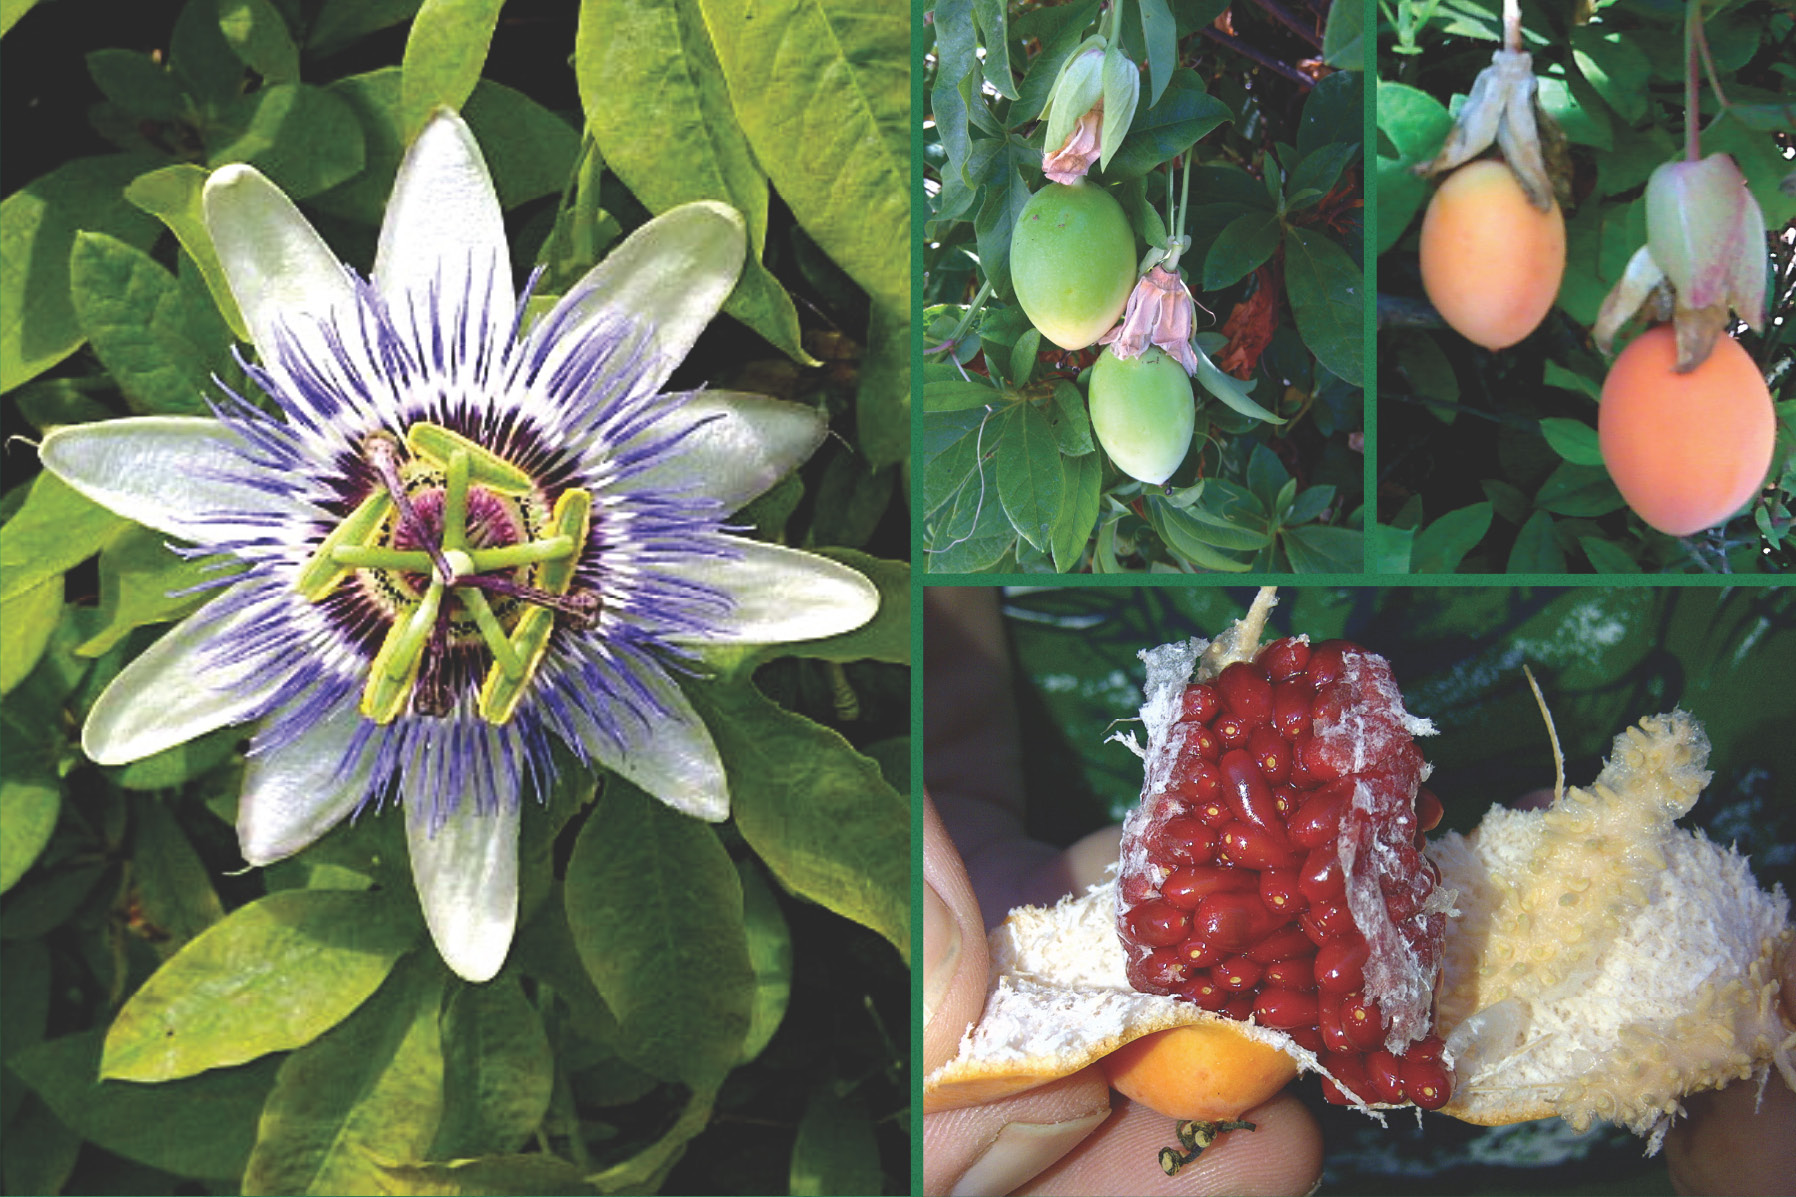 Plante Exotique Exterieur Resistant Au Froid Passionflower And Passion Fruit Natural Herbal Remedy